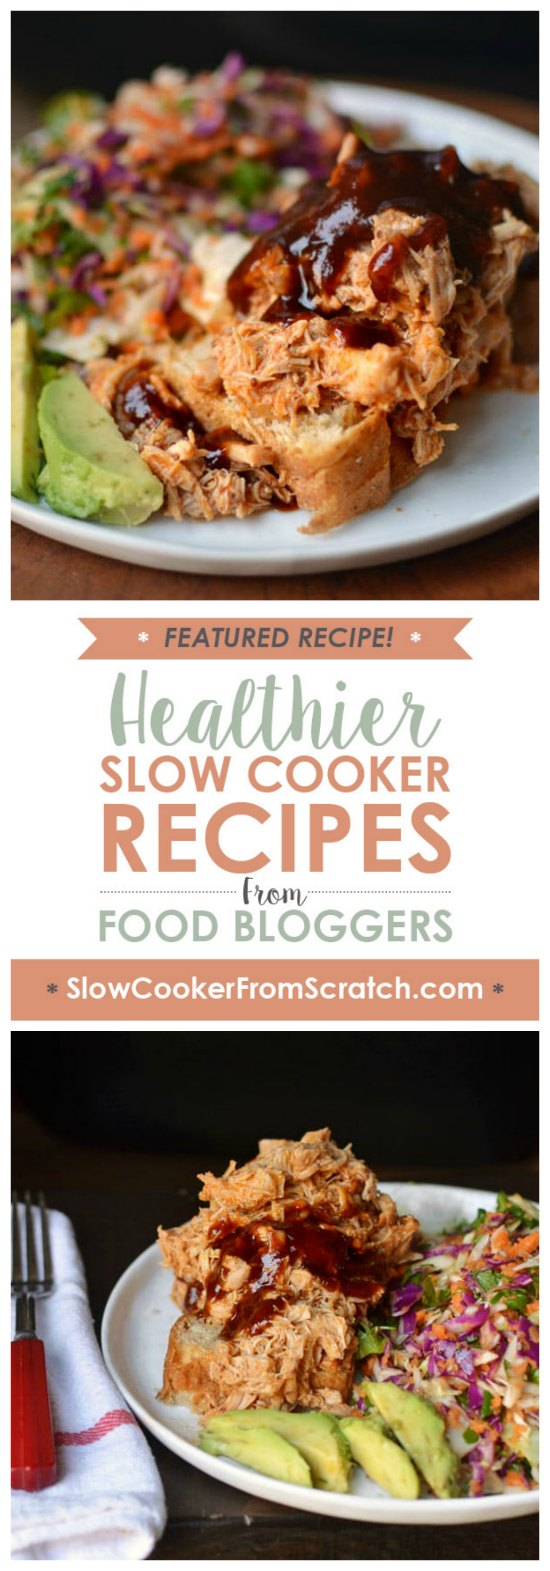 Slow Cooker Barbecue Shredded Chicken from The Kitchn featured on SlowCookerFromScratch.com